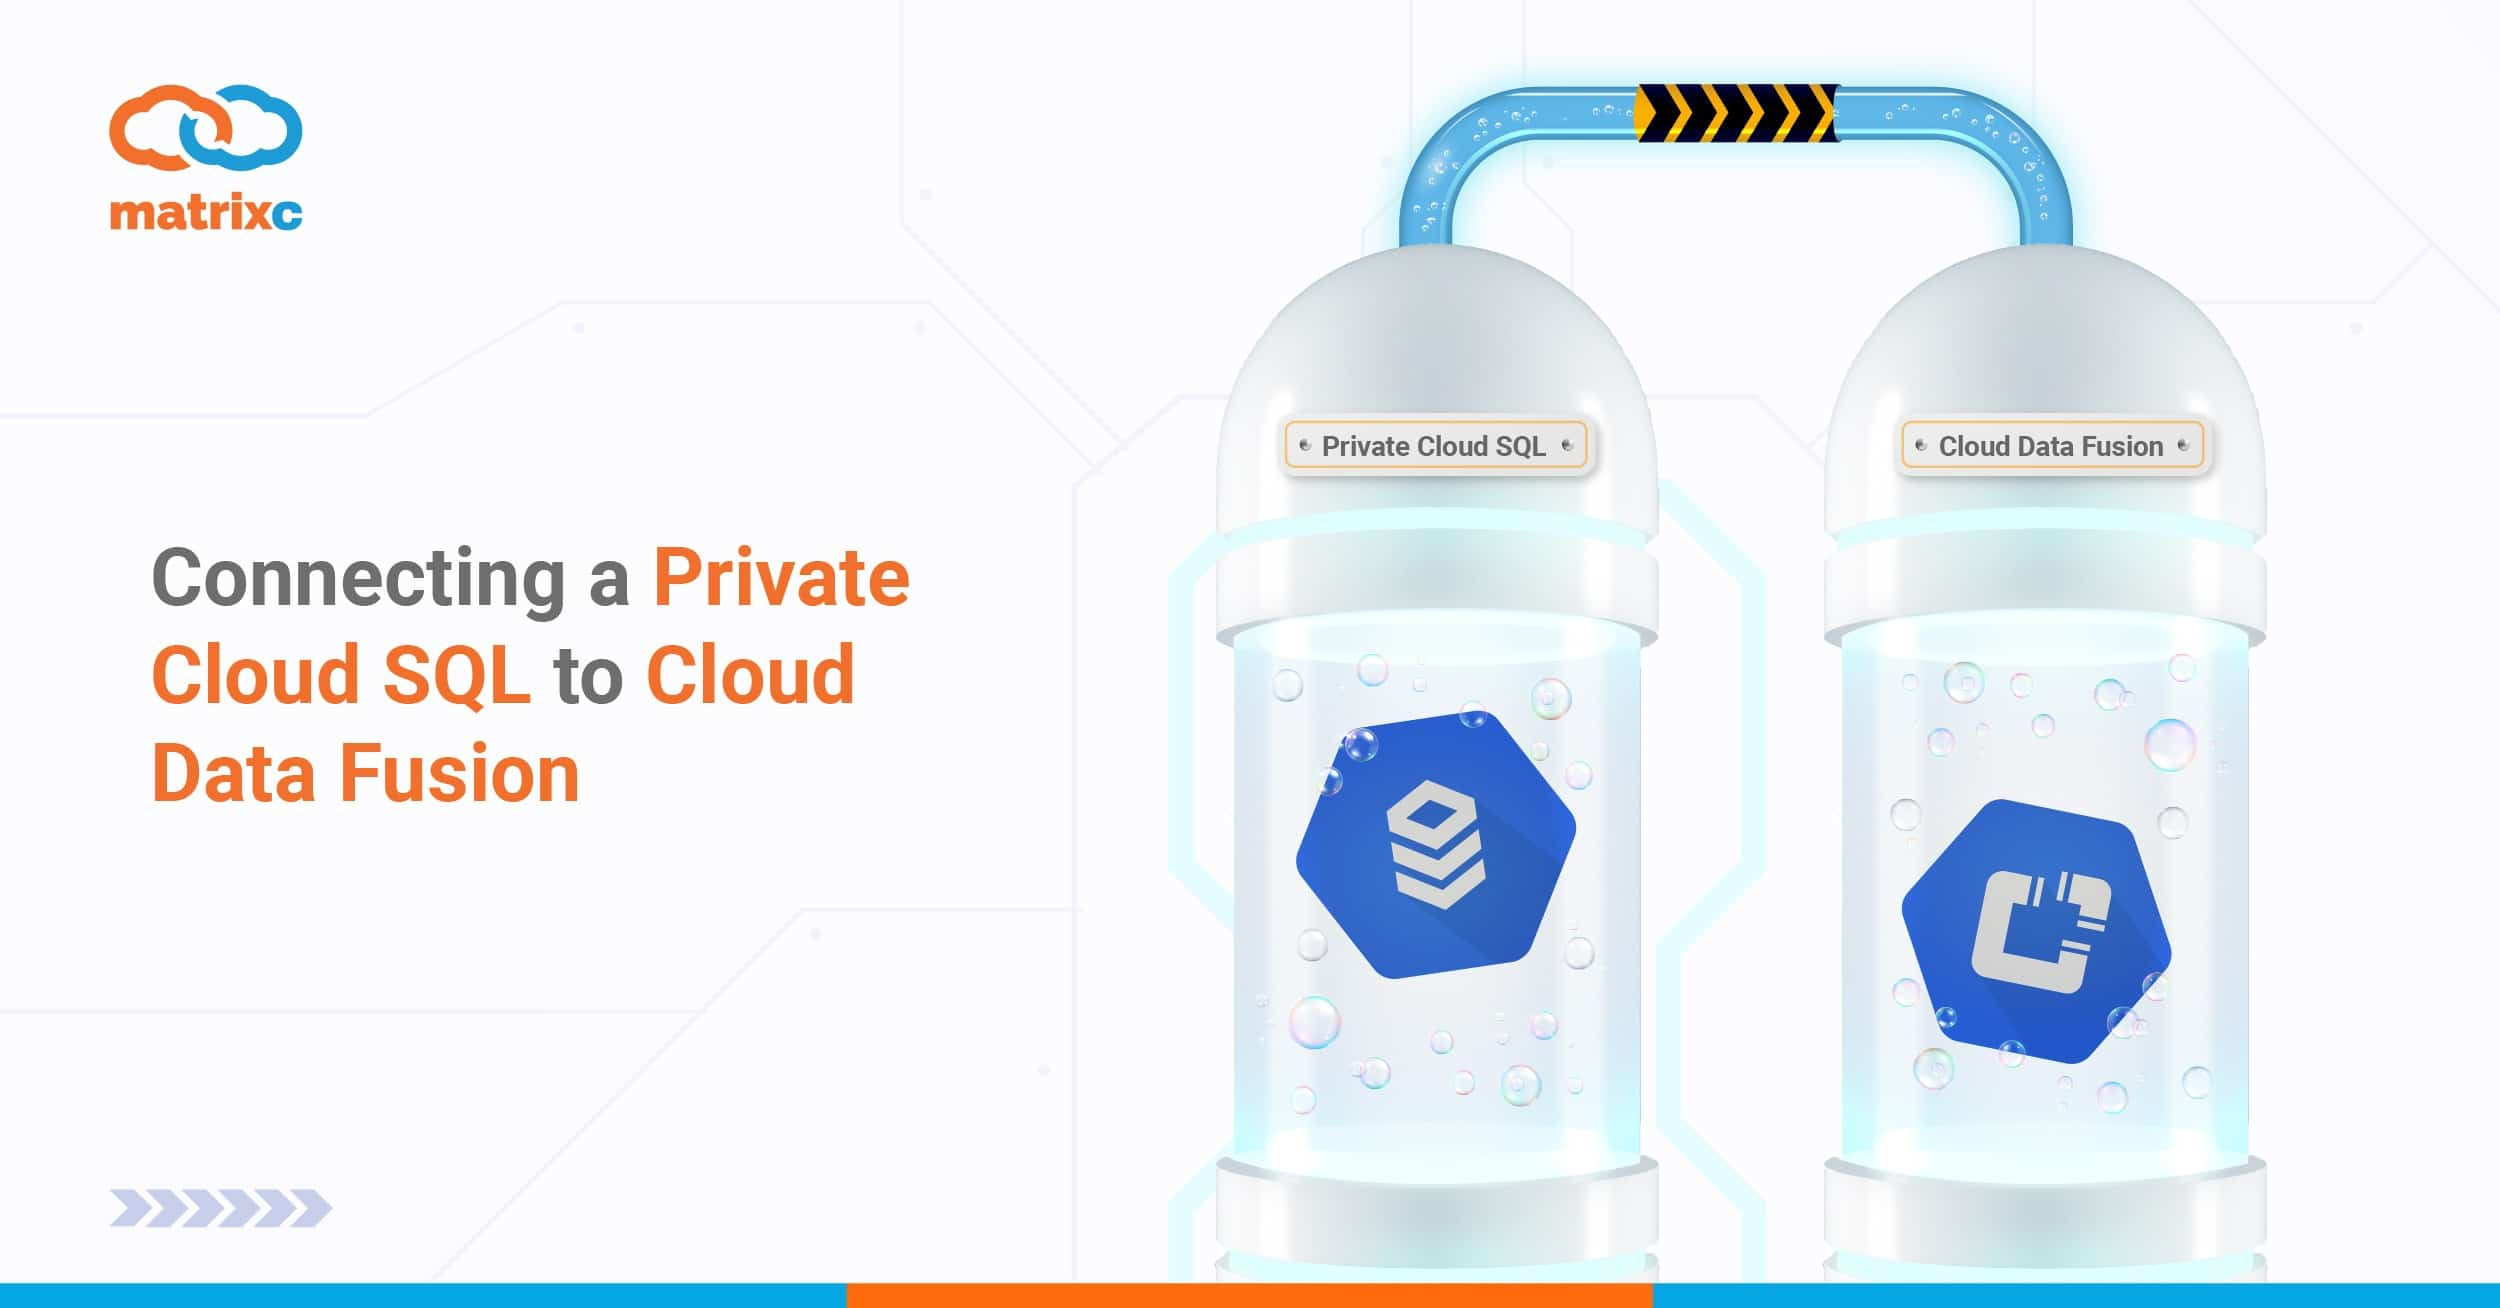 Connect a Private Cloud SQL to Cloud Data Fusion